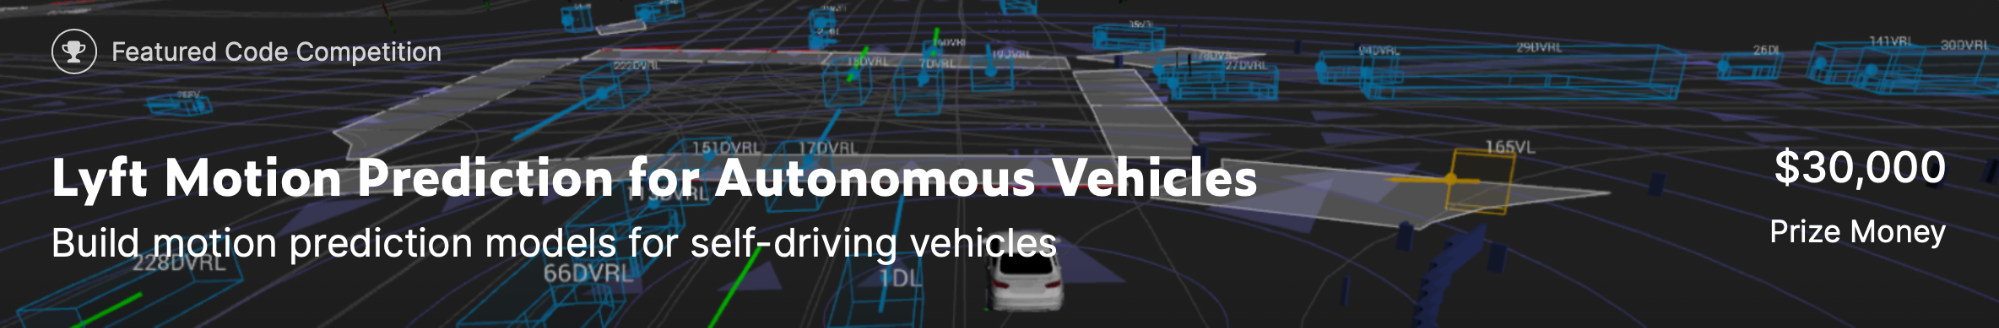 Kaggle Lyft Motion Prediction for Autonomous Vehiclesで4位に入賞しました